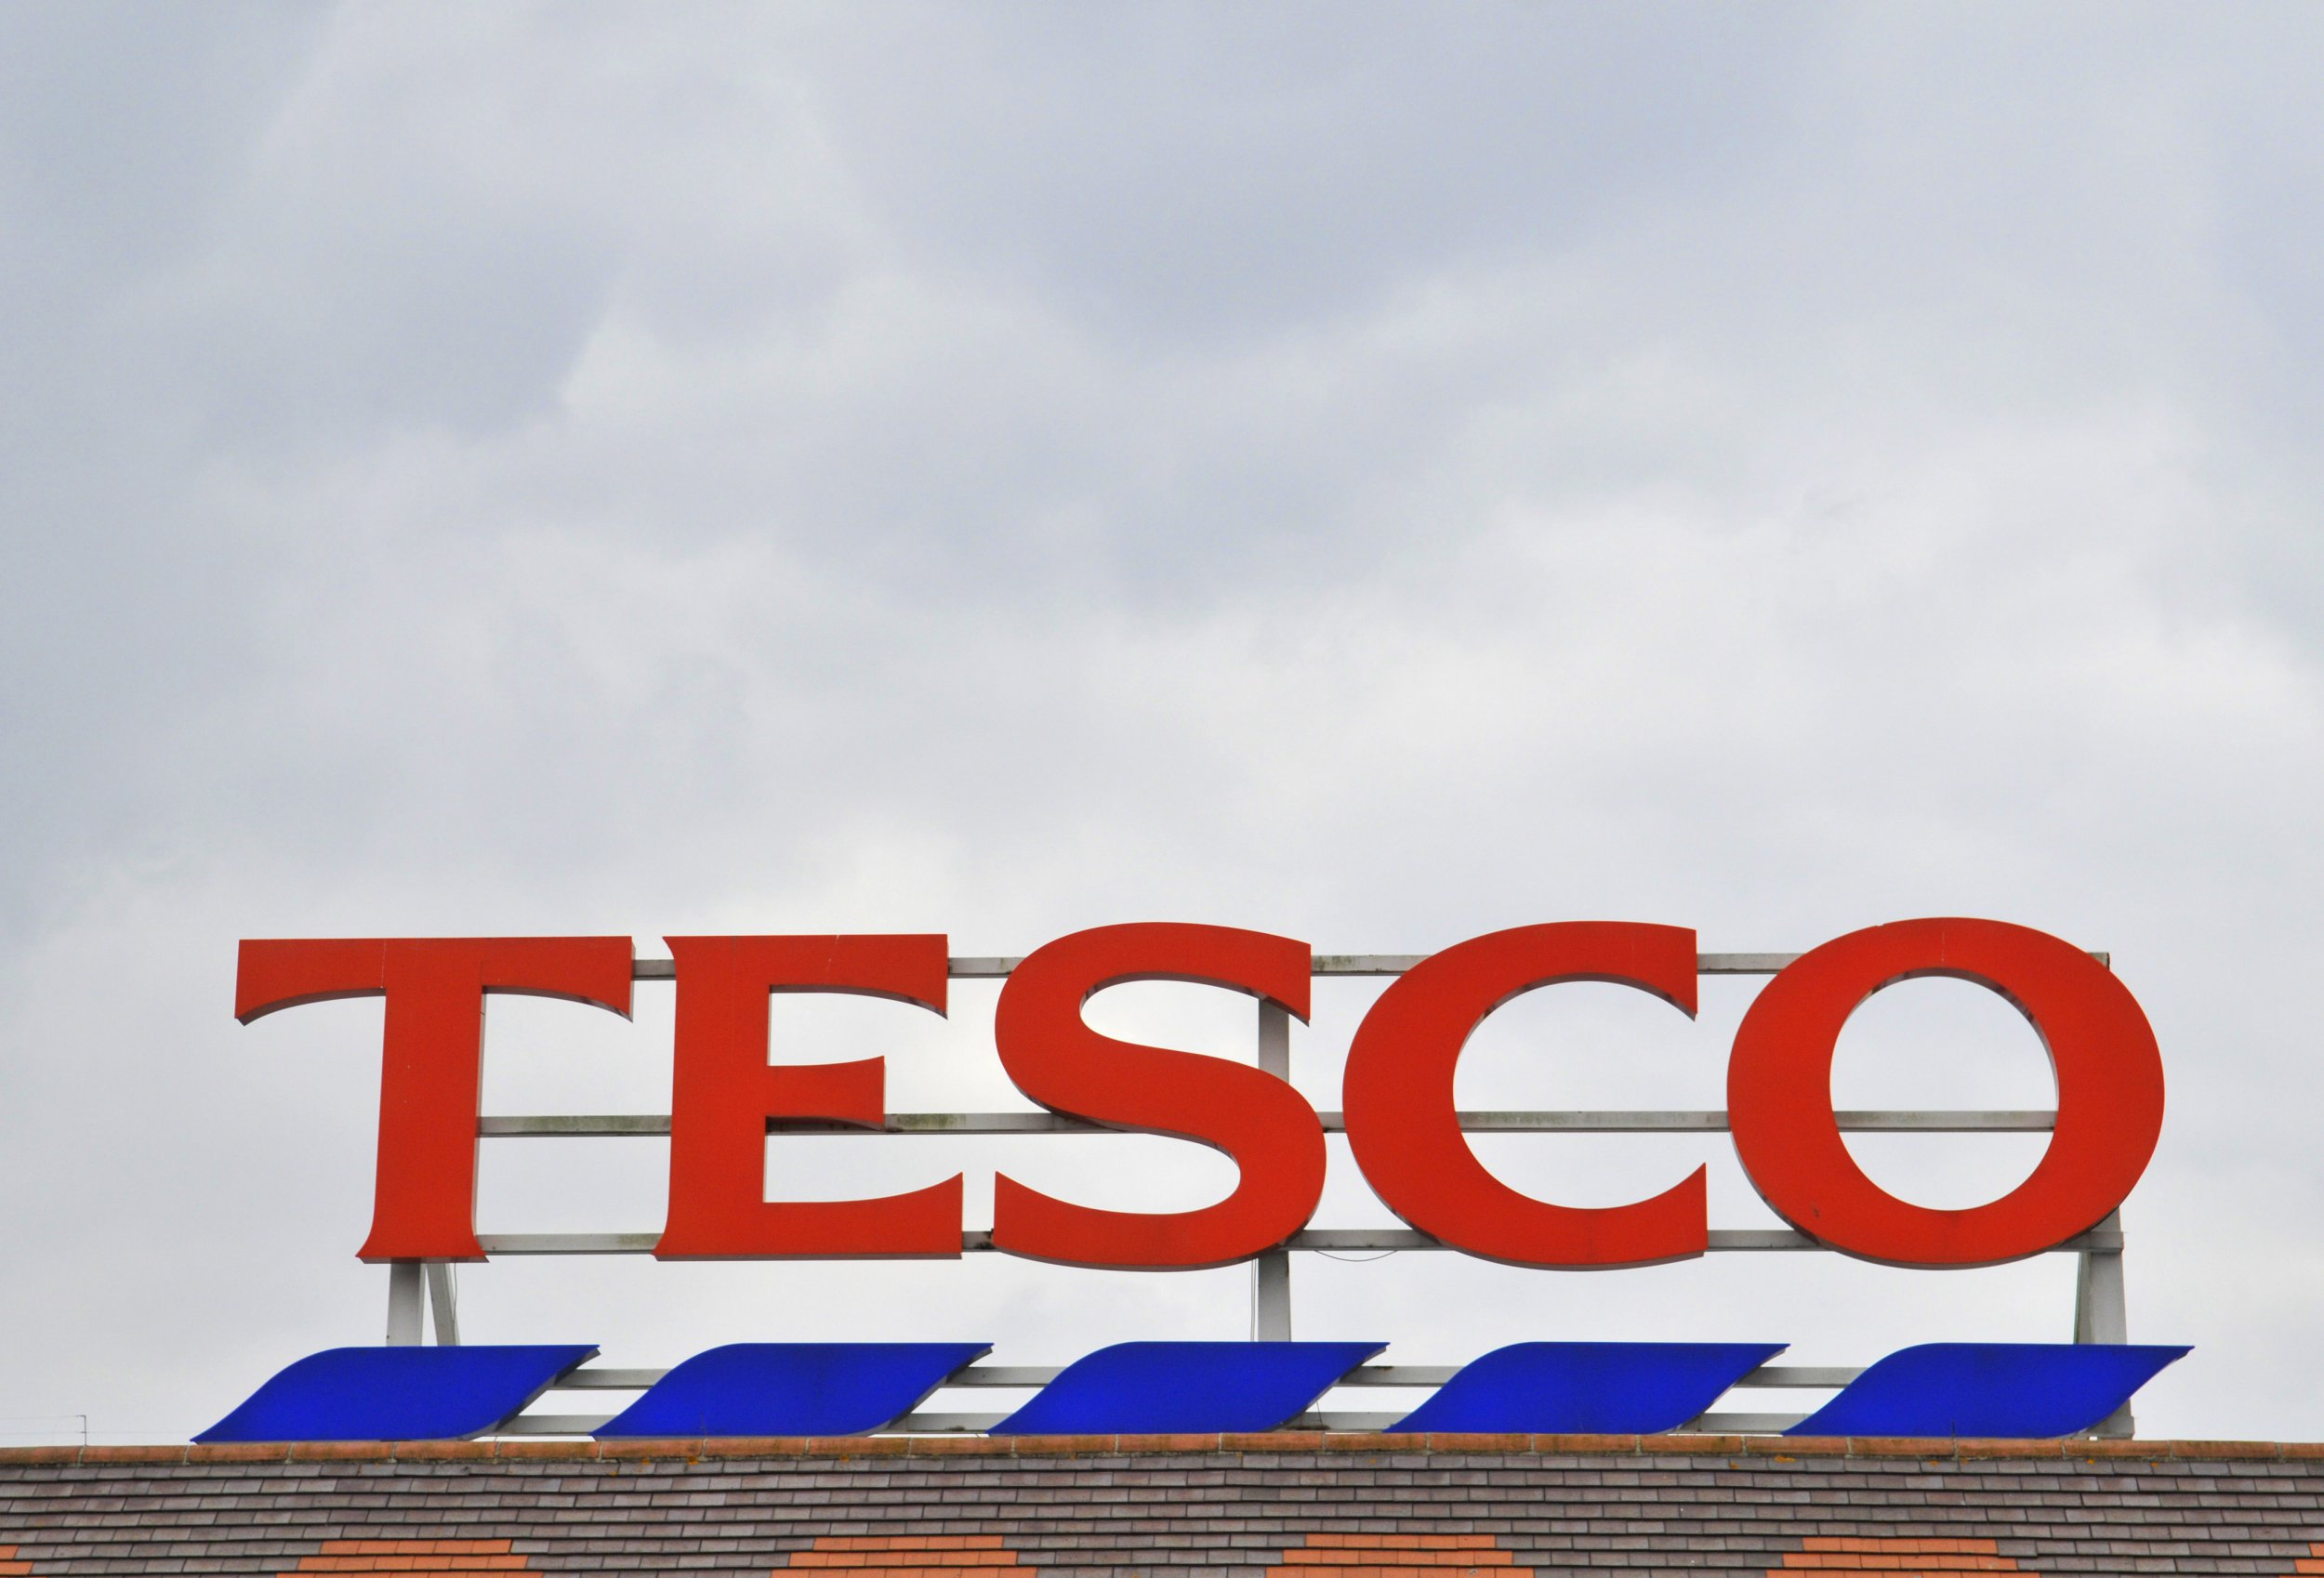 Tesco 'to axe 15,000 jobs and close meat, fish and deli counters'